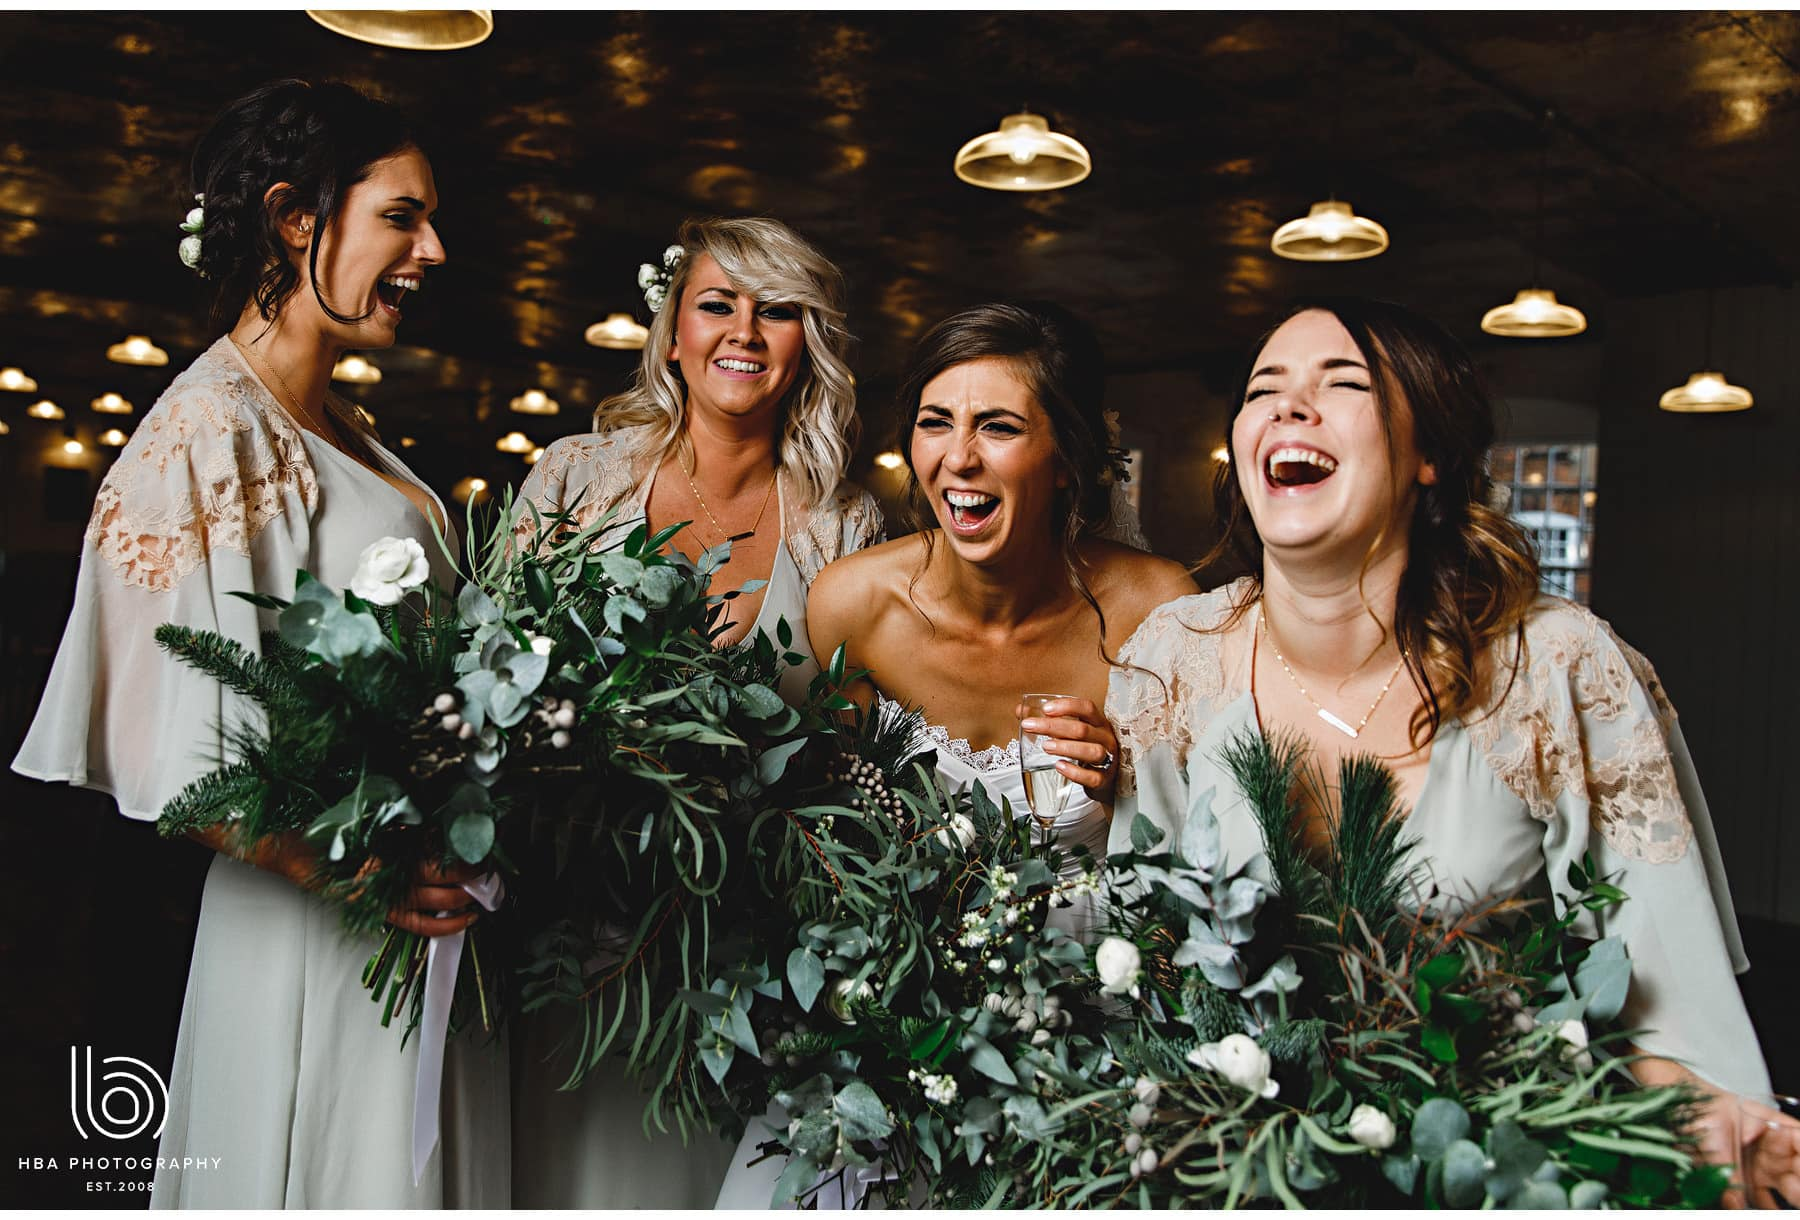 the bride and her girls laughing